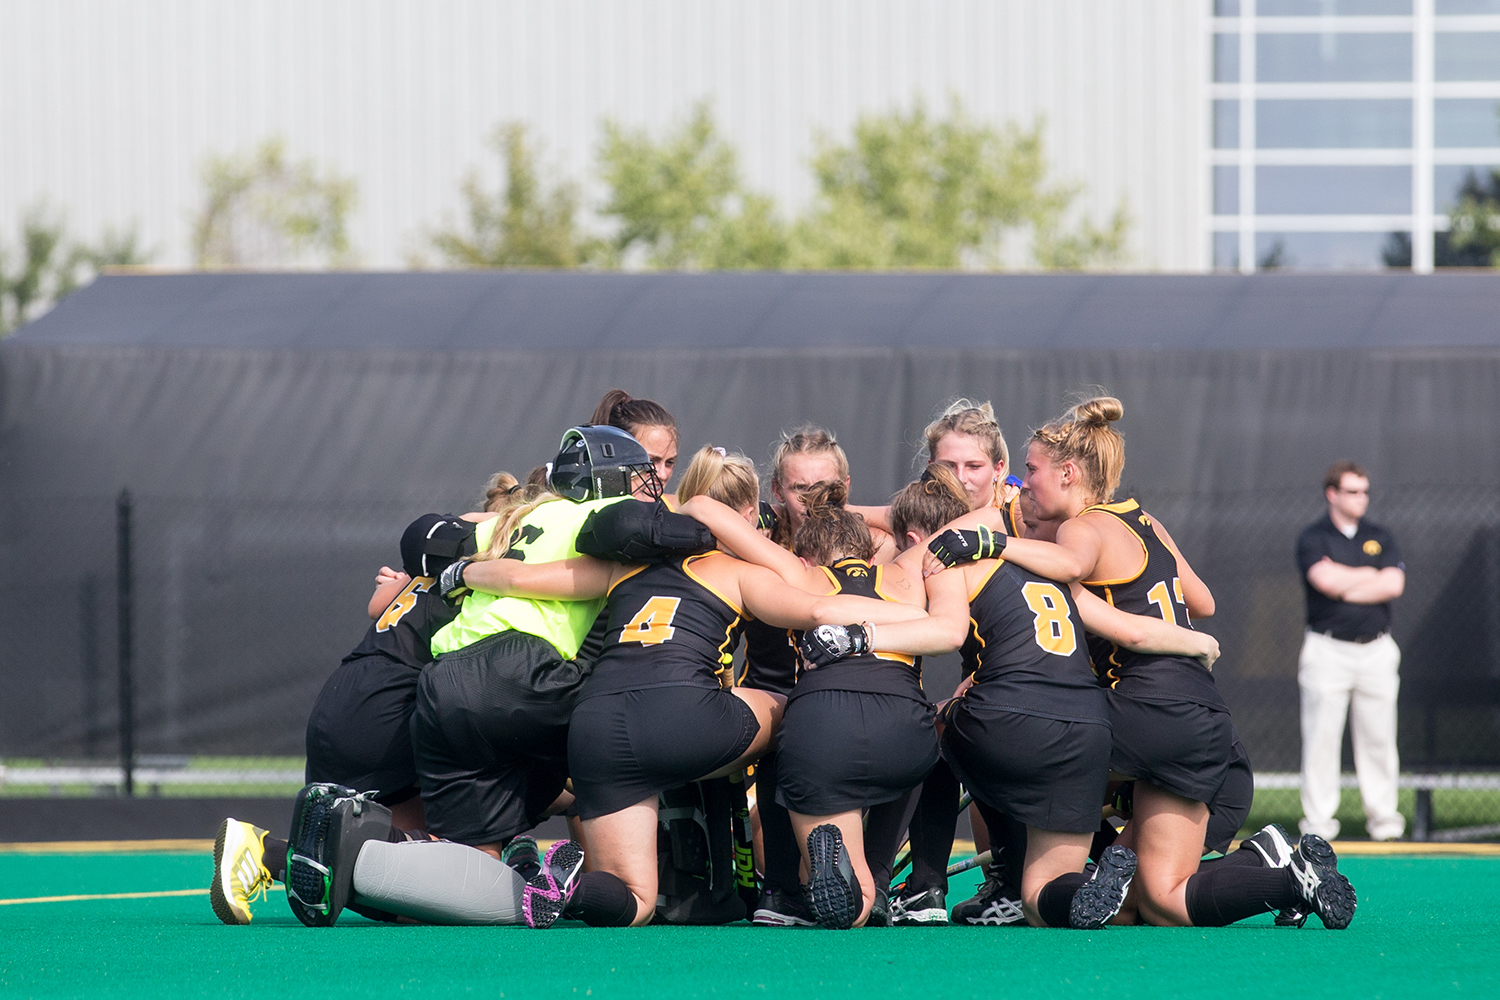 Iowa+players+huddle+during+a+field+hockey+match+between+Iowa+and+Dartmouth+College+at+Grant+Field+on+Friday%2C+August+31%2C+2018.+The+Hawkeyes+shut+out+the+Big+Green%2C+6-0.